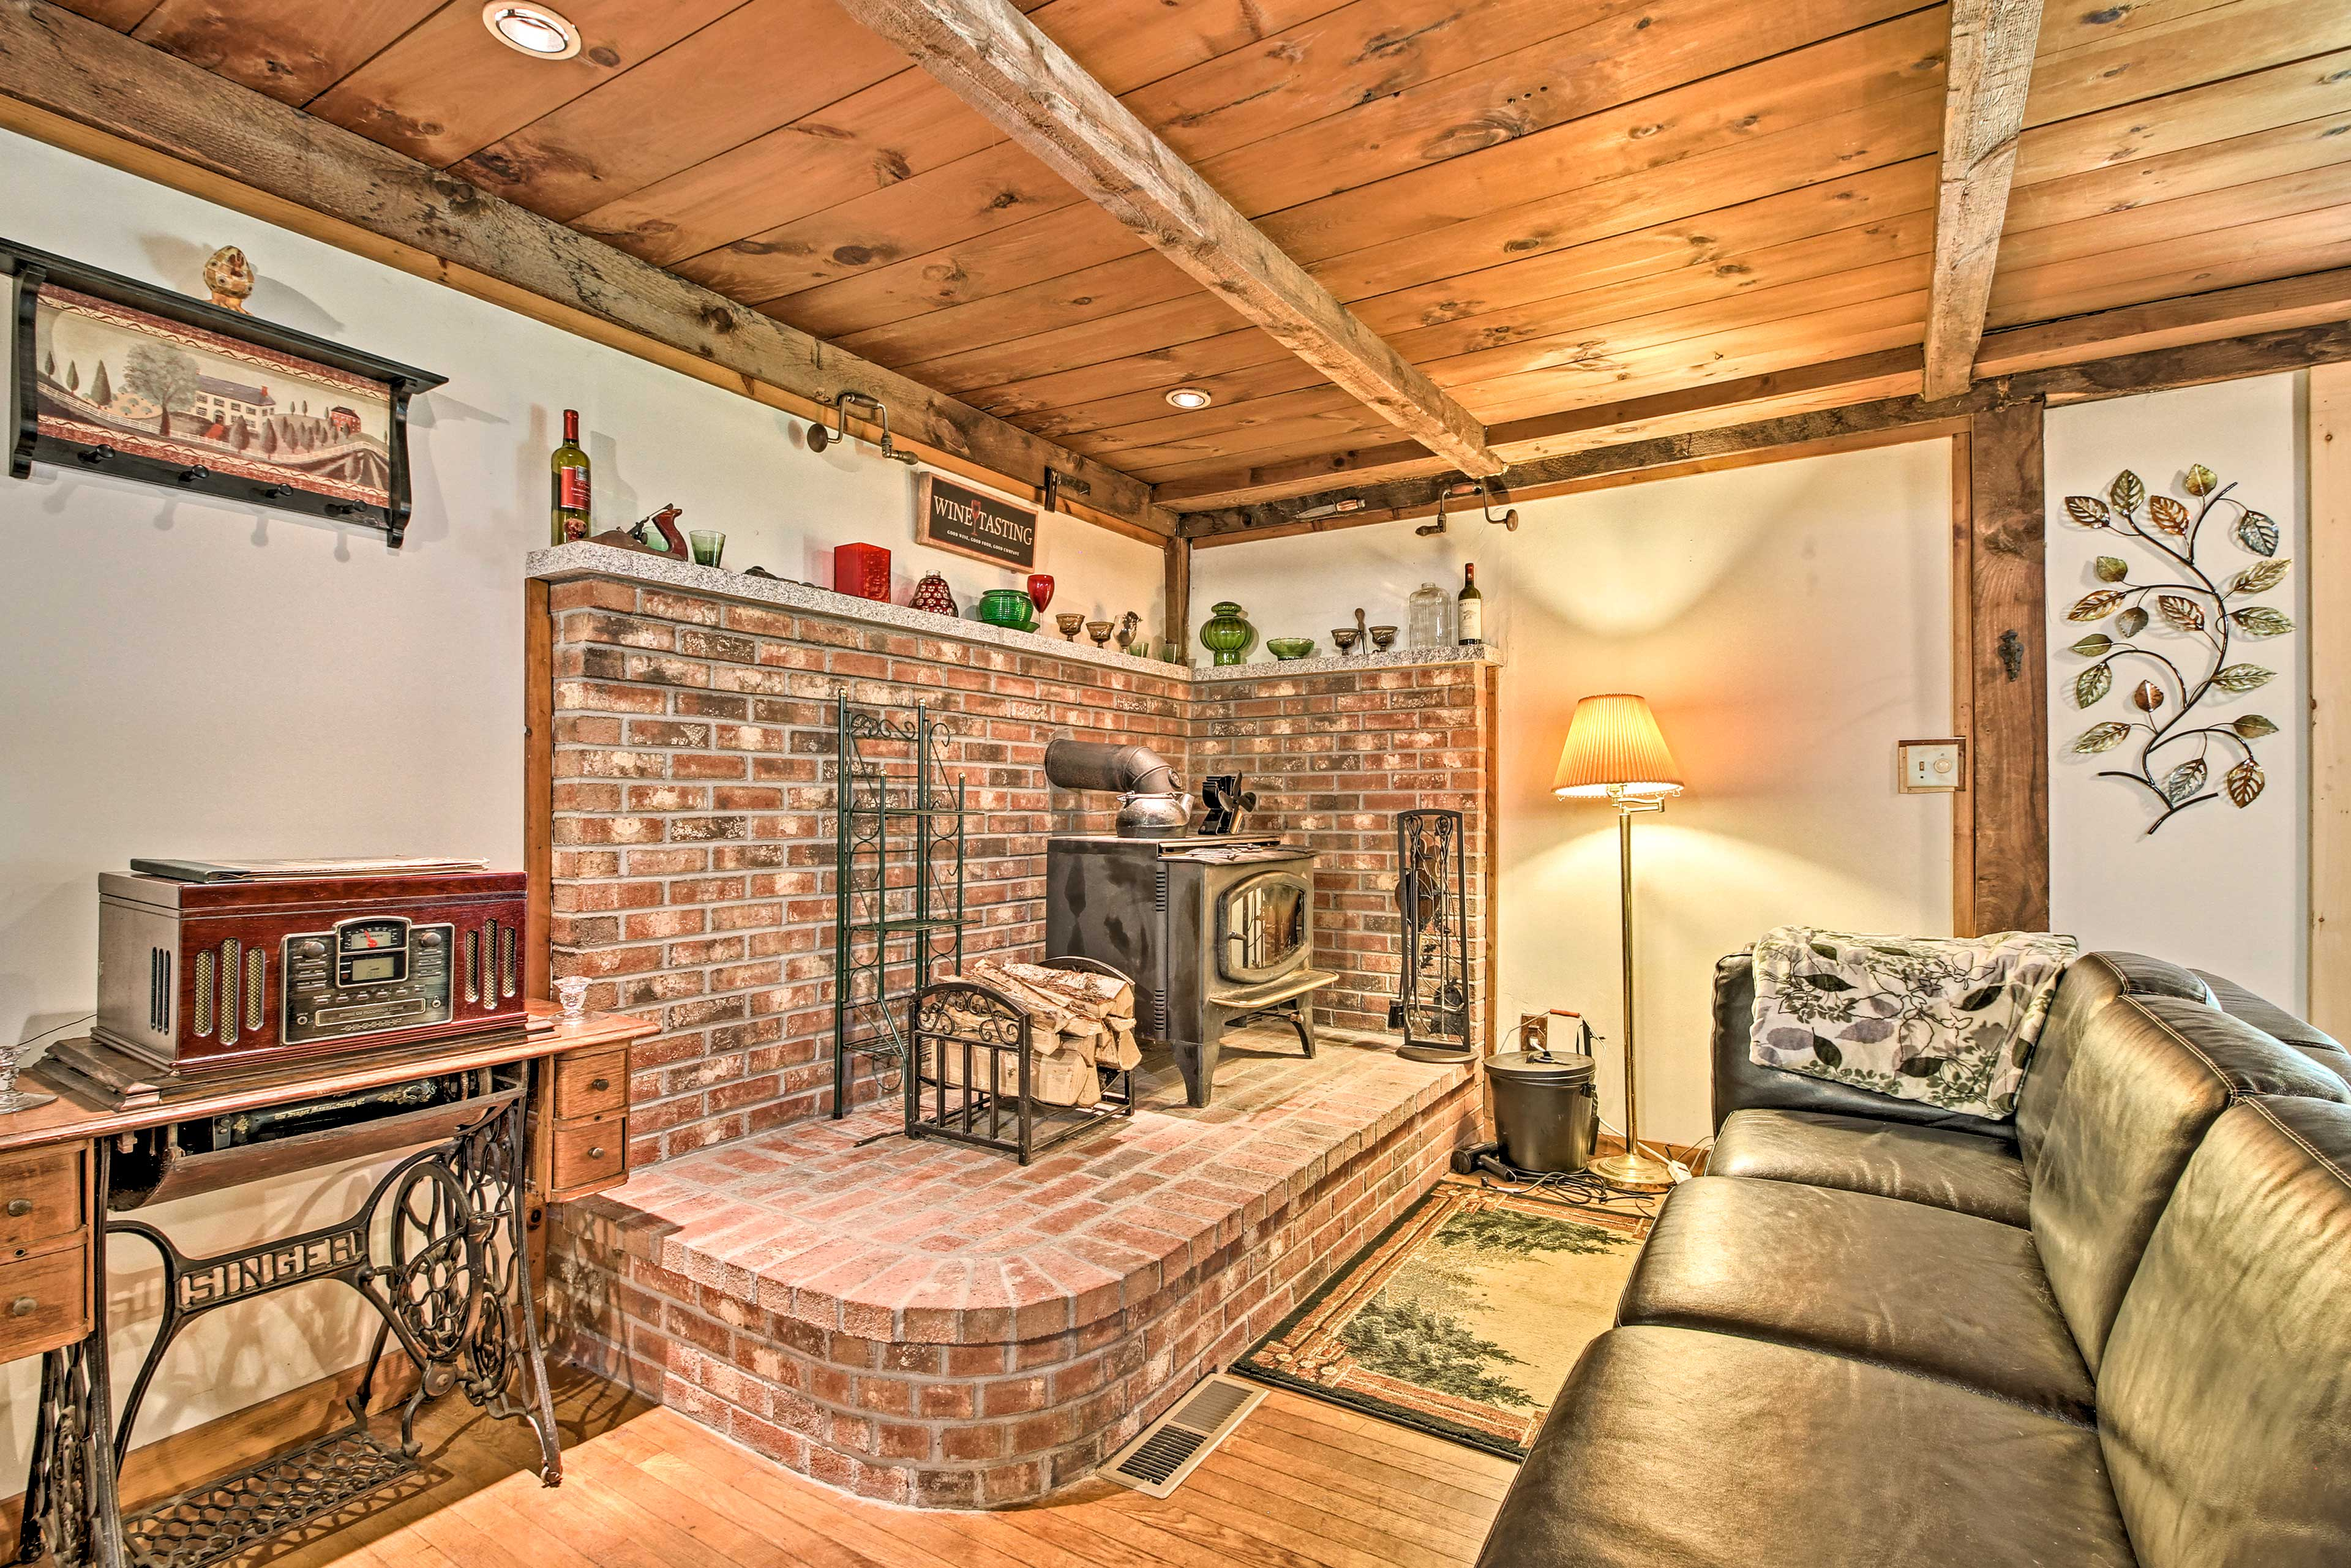 Reconnect with loved ones when you stay at this 2-bedroom, 1.5-bath home.